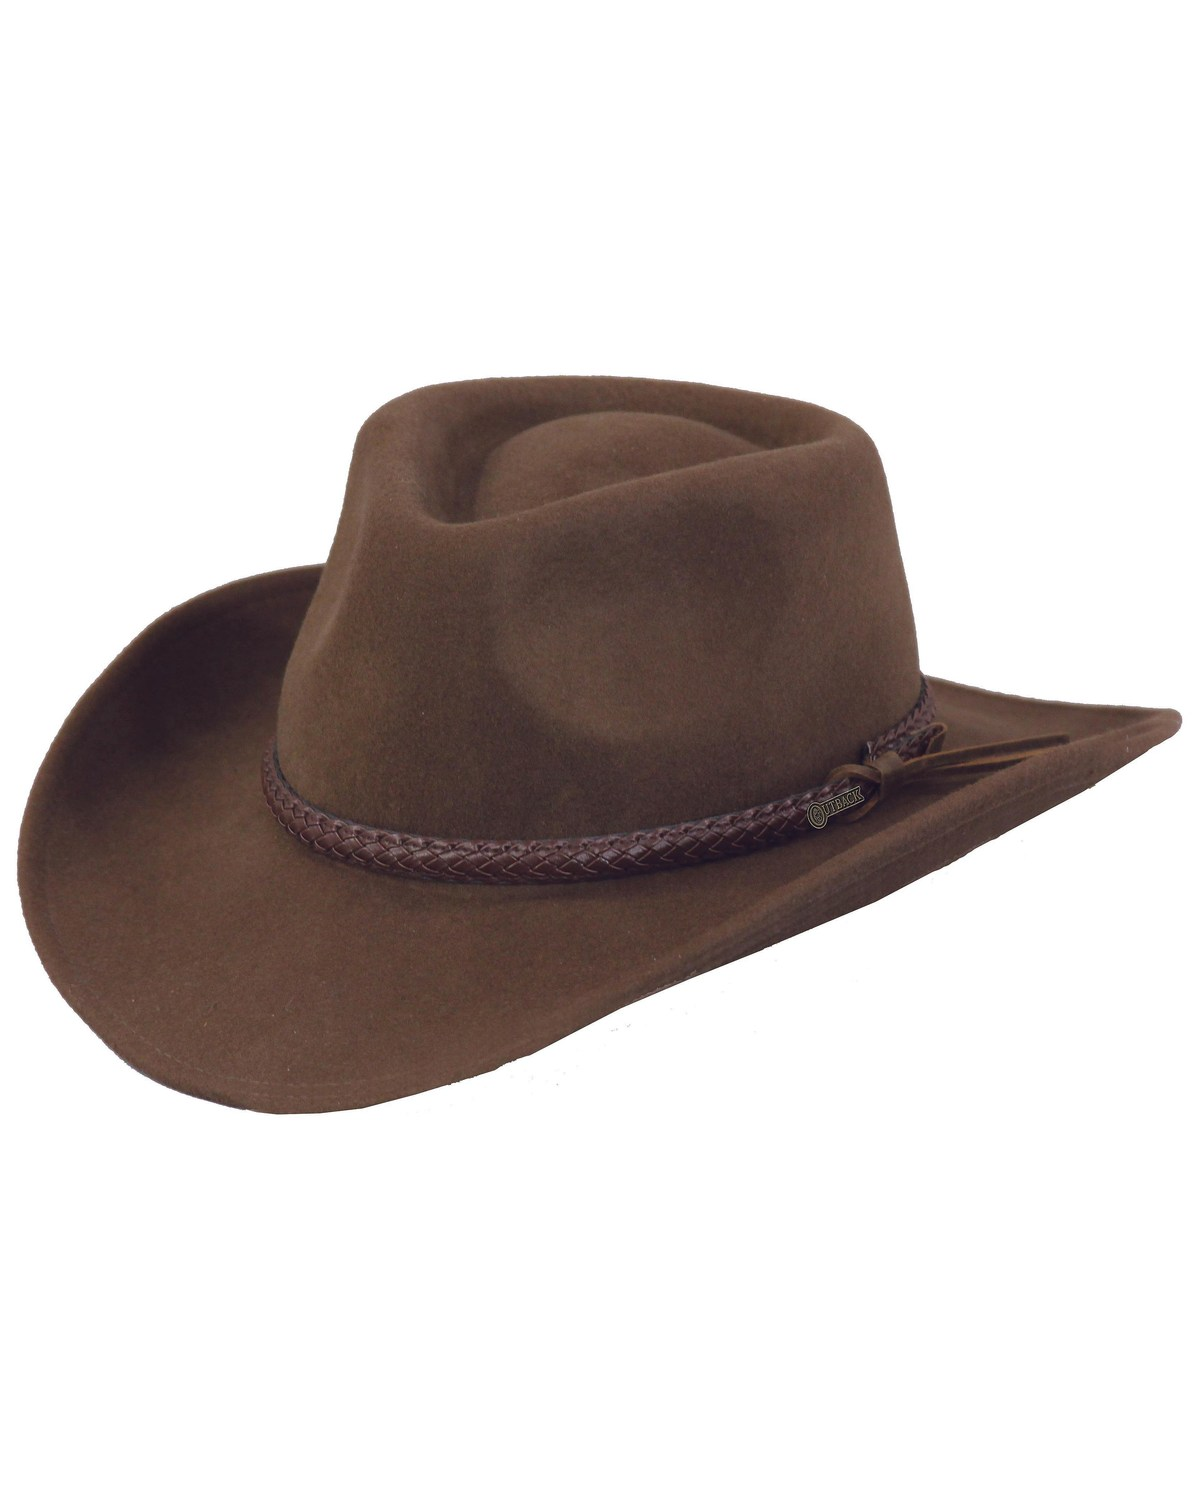 Outback Trading Co. Dusty River Crushable Australian Wool ...